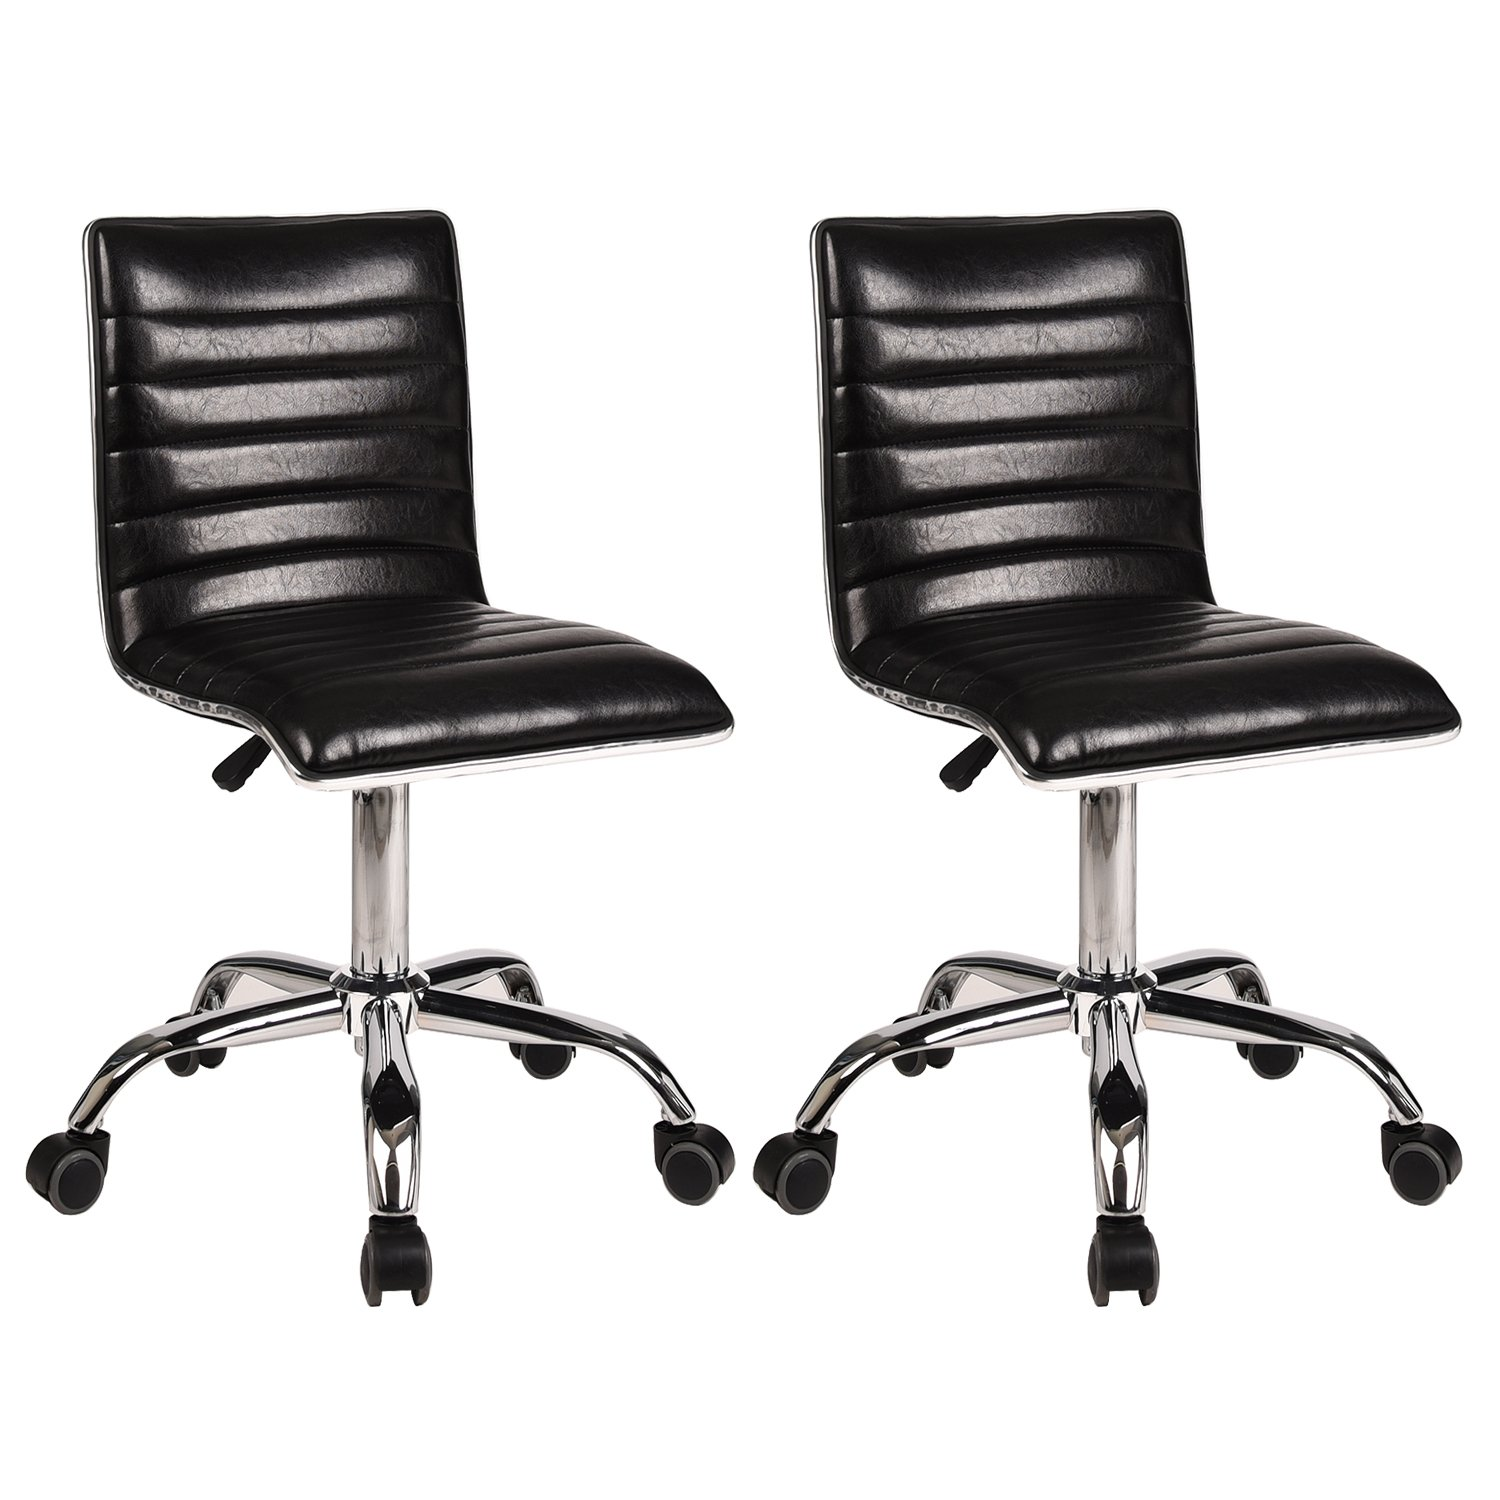 Desk Chair Swivel Home Office Task Chair Set of 2 Mid-Back Support Ribbed Design Height Adjustable Counter Height Armless PU Leather Fabric Airlift Upholstery Computer Desk Chair with Wheels(Black)